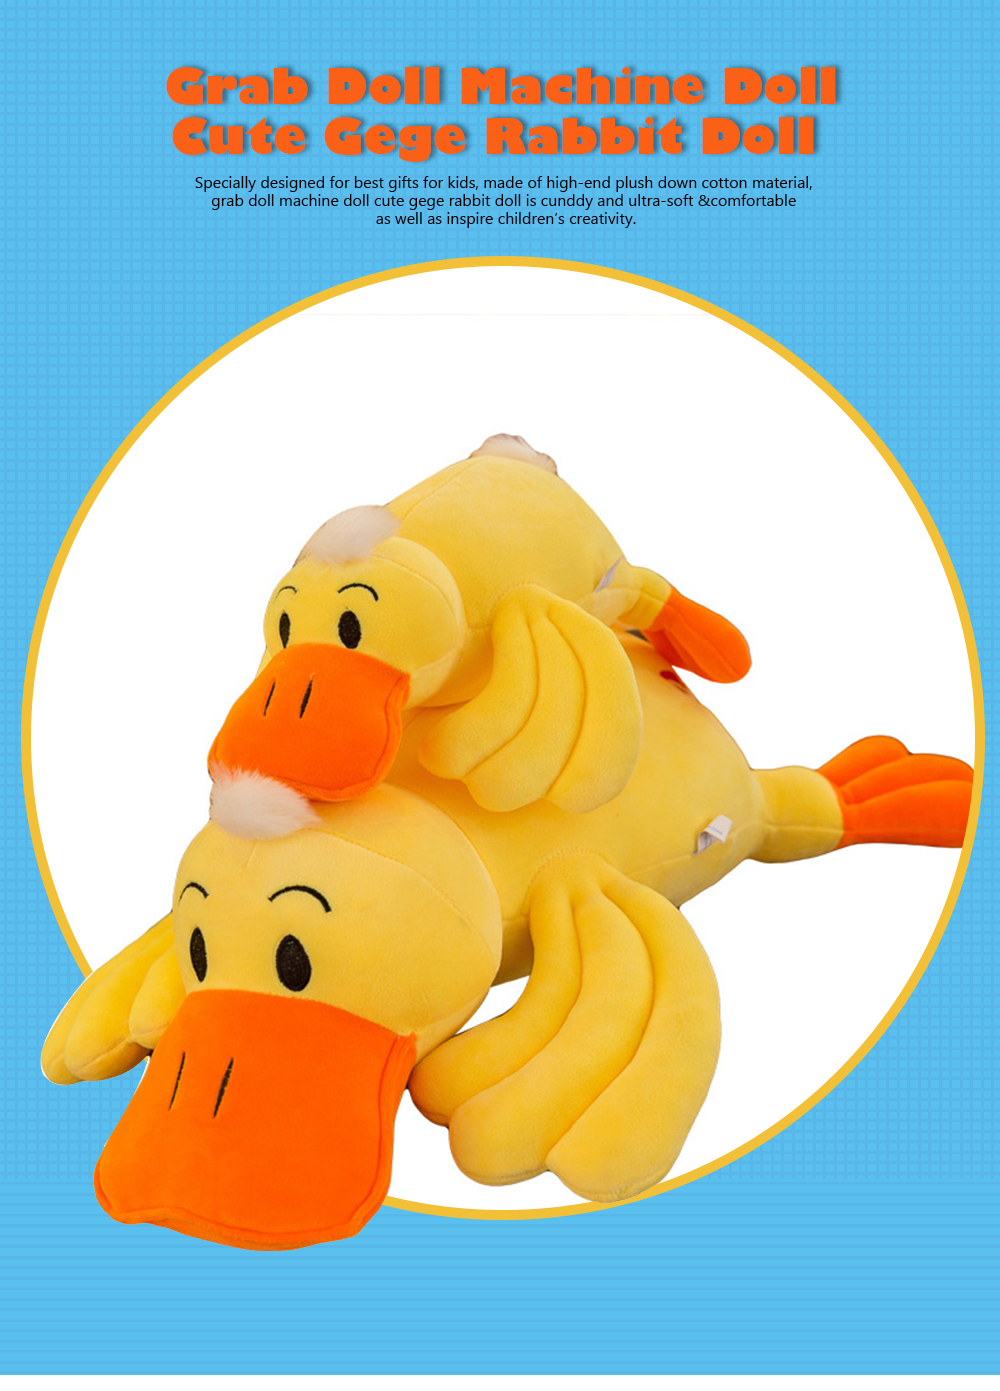 Yellow Duck Plush Toy, Grab Doll Claw Toy, Cute Duck Doll Festival Activities Gift 0